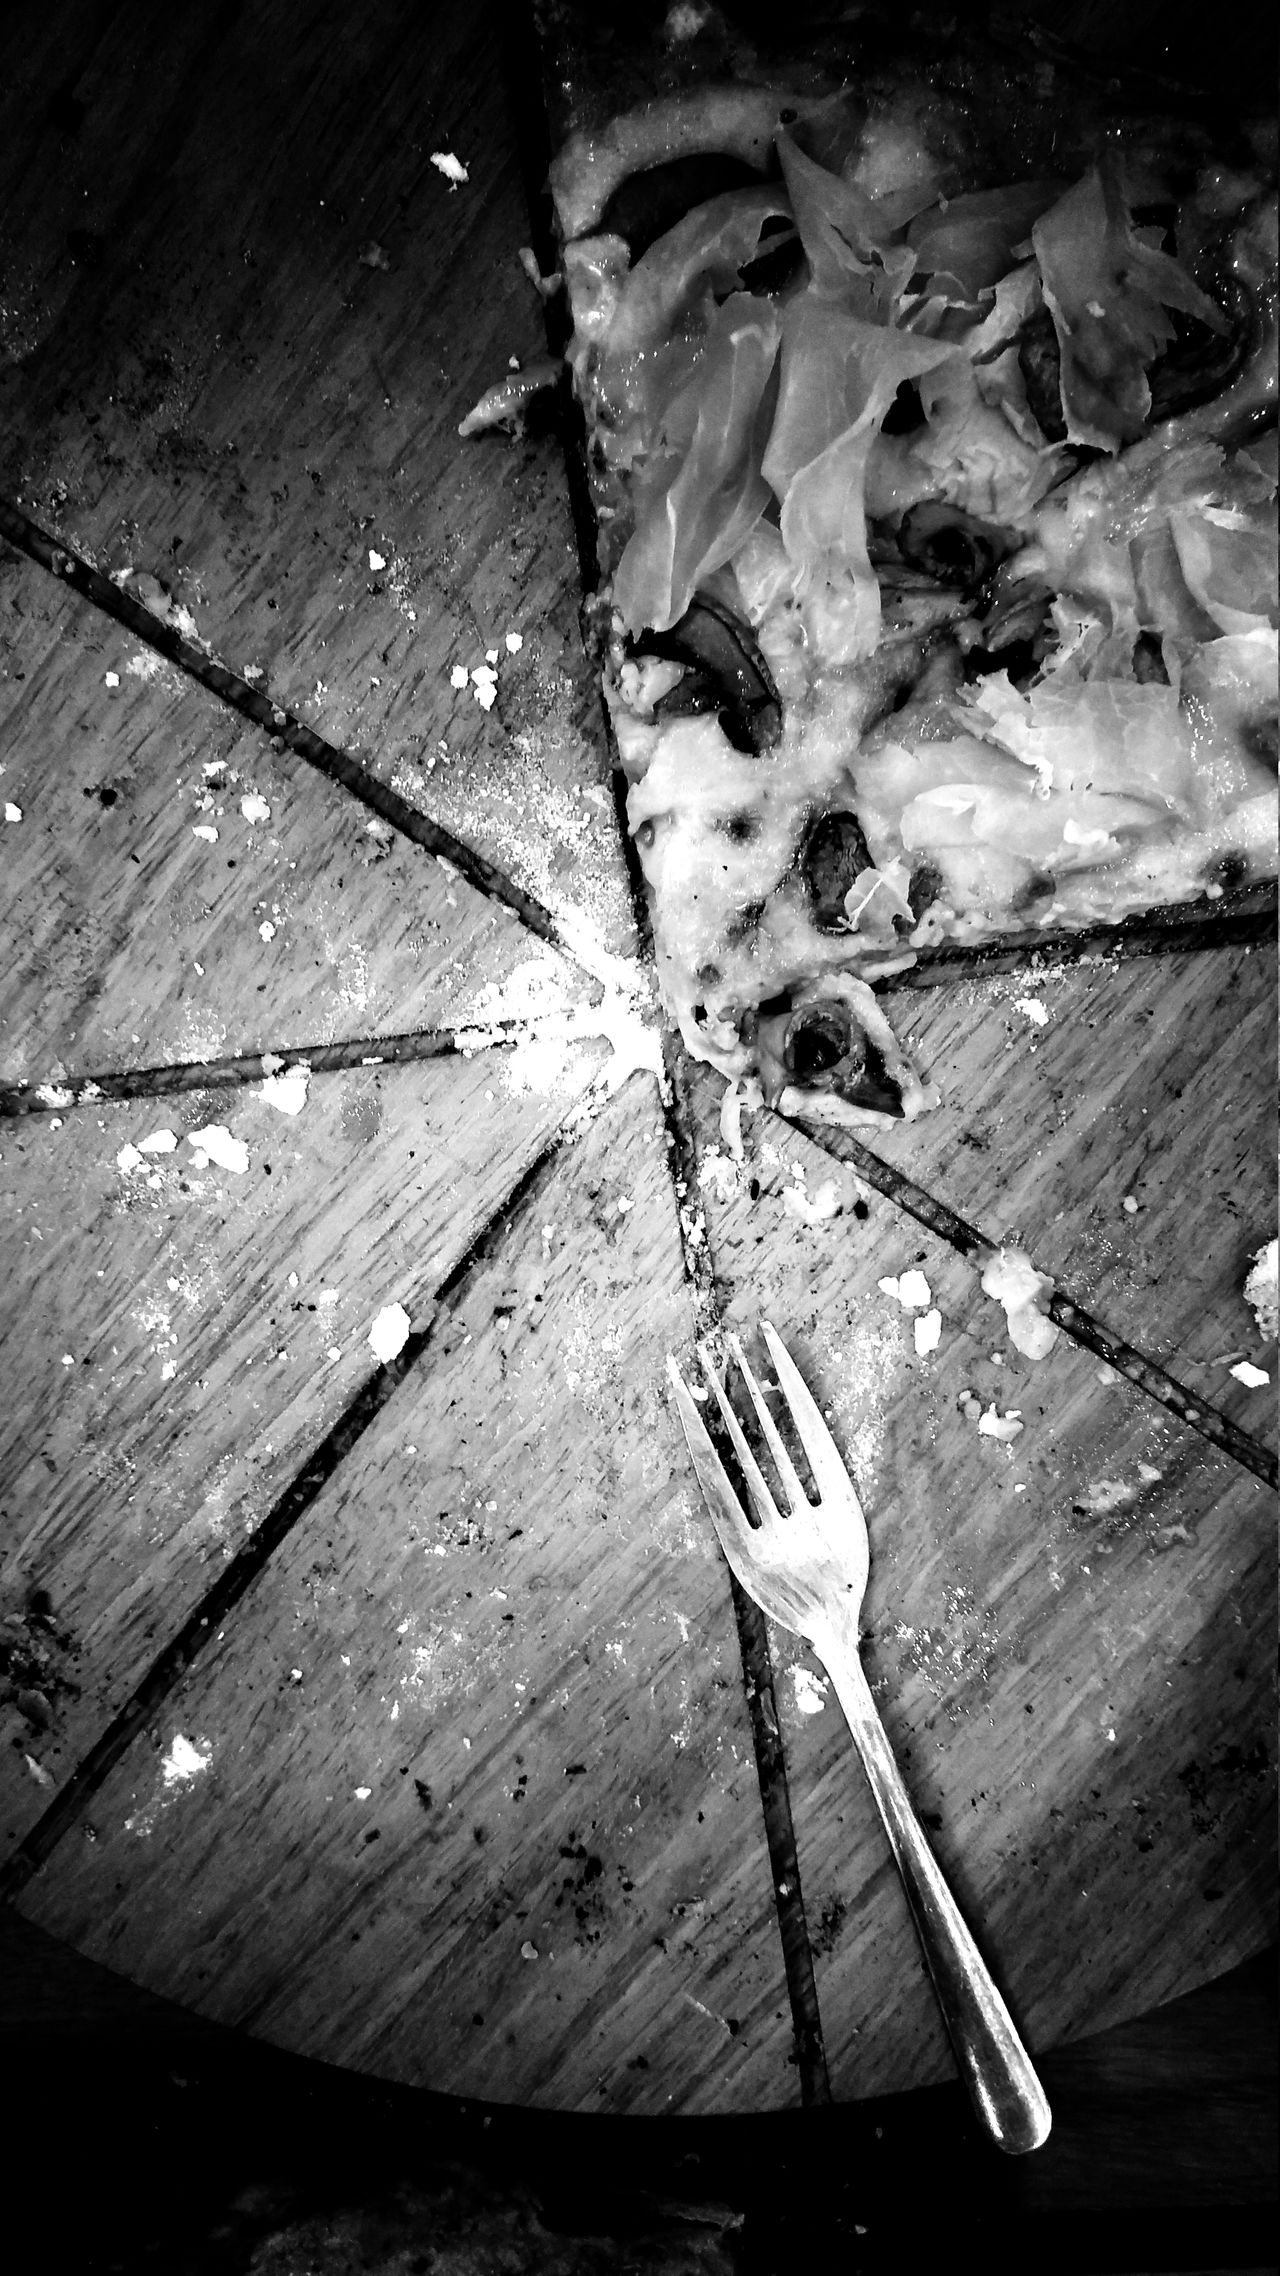 Wooden Full Frame Urban Photography Travel Surface Level Still Life Shadows & Lights My Food Addiction My World Of Food Food Food And Drink Pizza Prosciutto Prosciutto Pizza Black And White Black & White Black And White Photography Dinner Dinner Date Date Fine Art Food And Beverages My Favorite Foods Monochrome Photography Urban Exploration